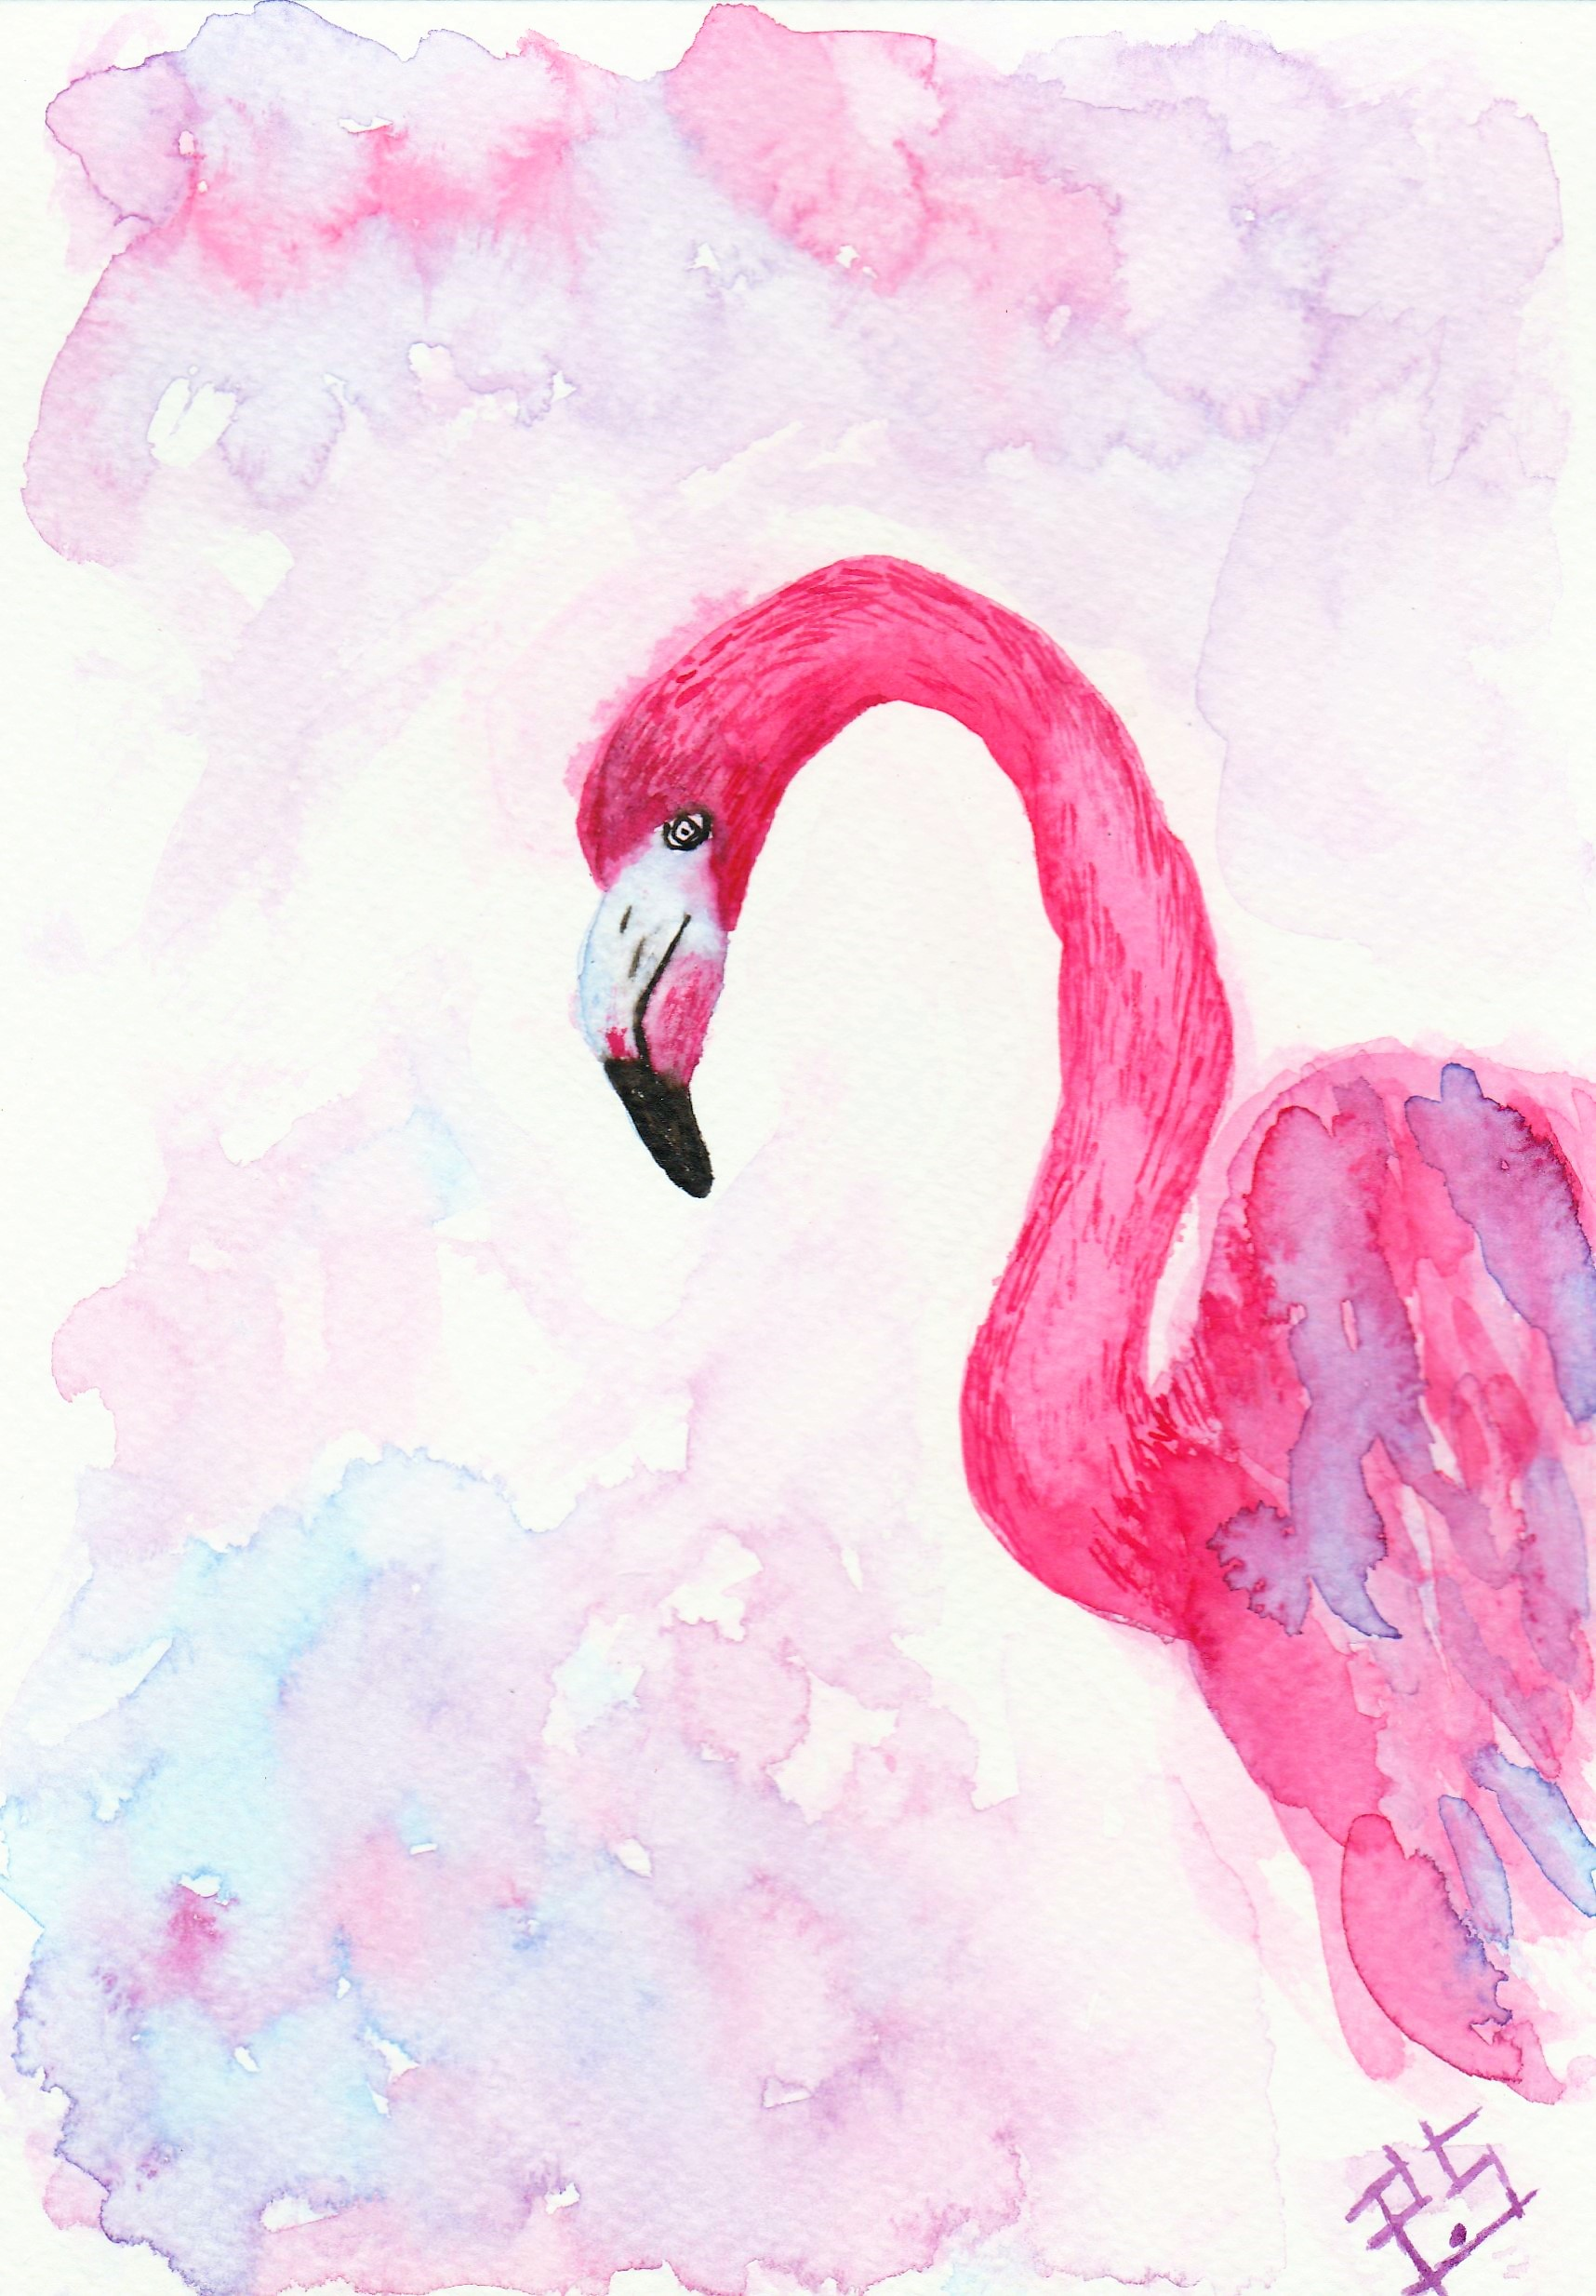 Flamingo Watercolor Painting by Payal Sharma